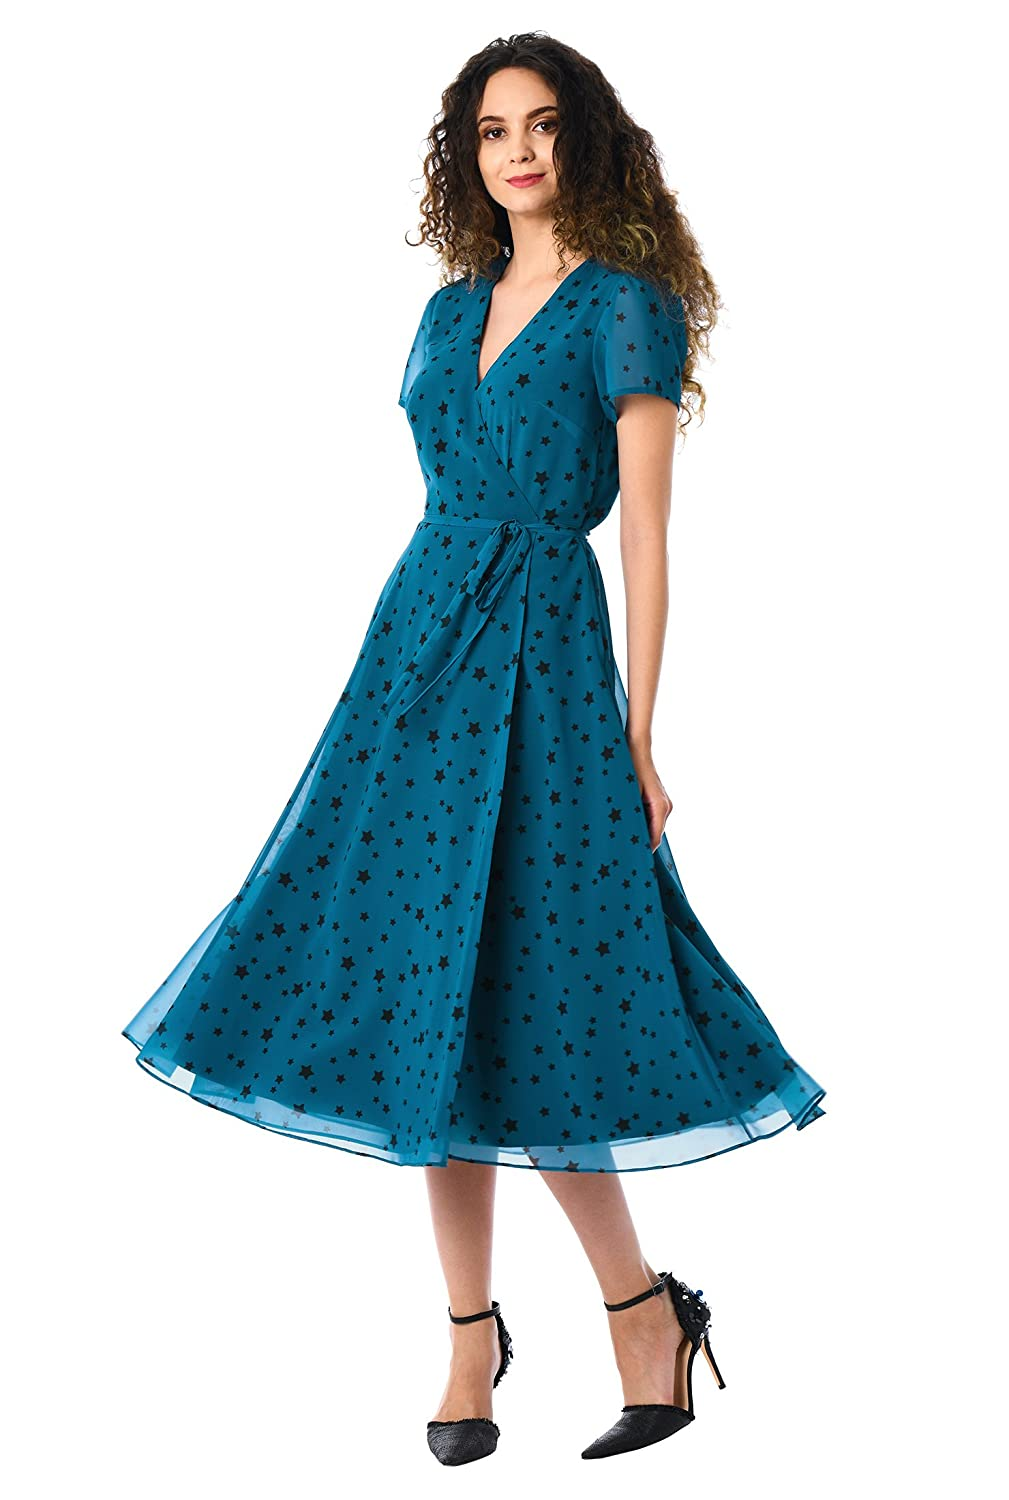 1940s Style Dresses, Fashion & Clothing